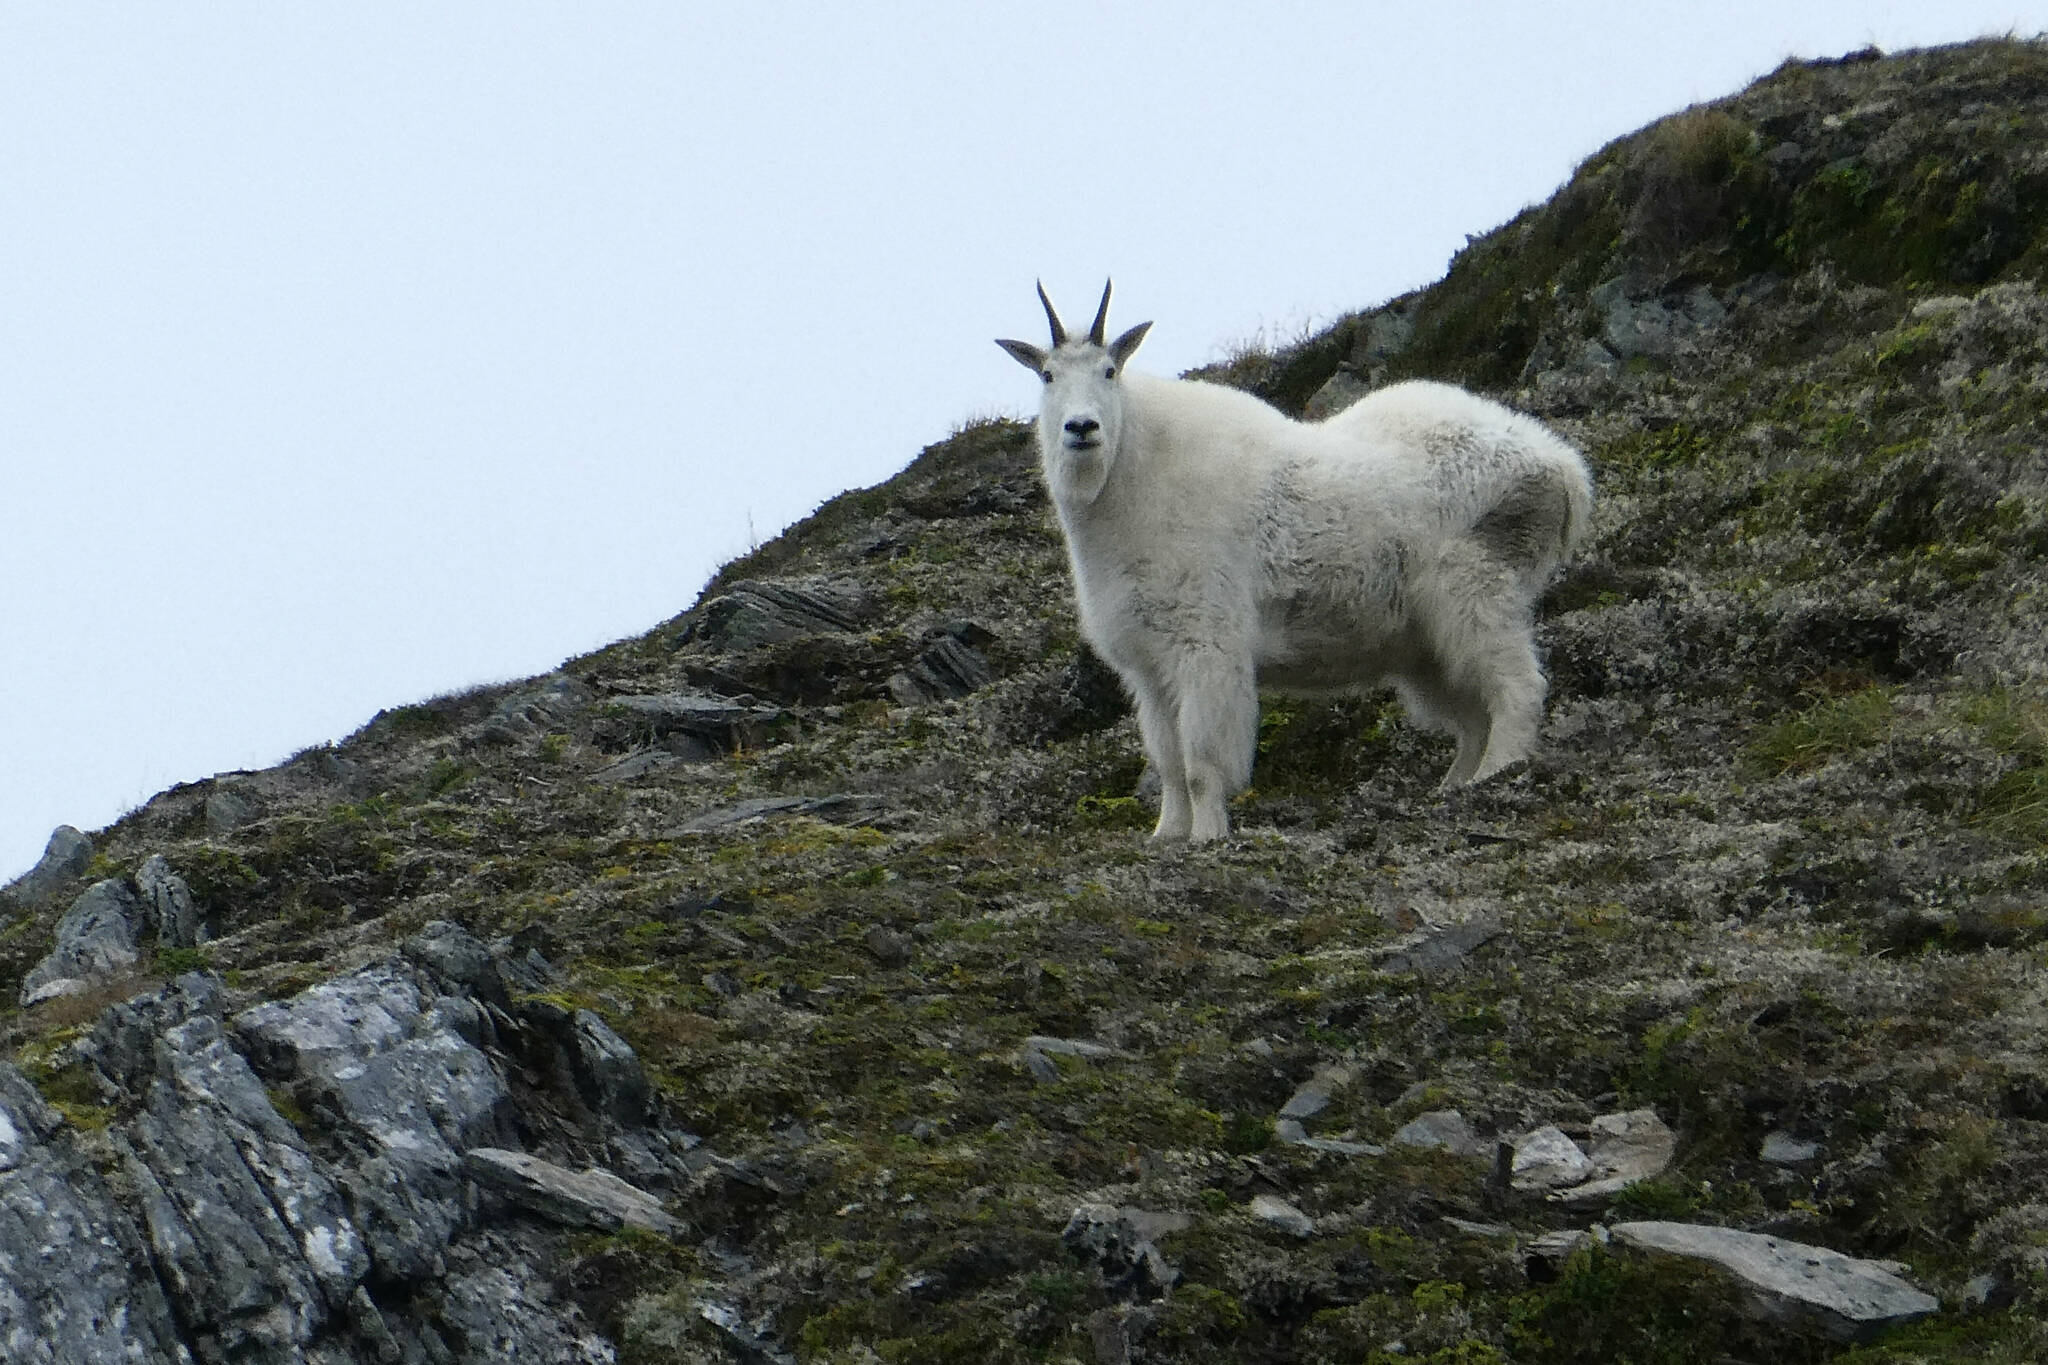 A mountain goat stands on Sheep Mountain in the backcountry of Juneau, Alaska, on Thursday, Aug. 27, 2020. The goat was among four grazing on the mountain. (AP Photo/Becky Bohrer)